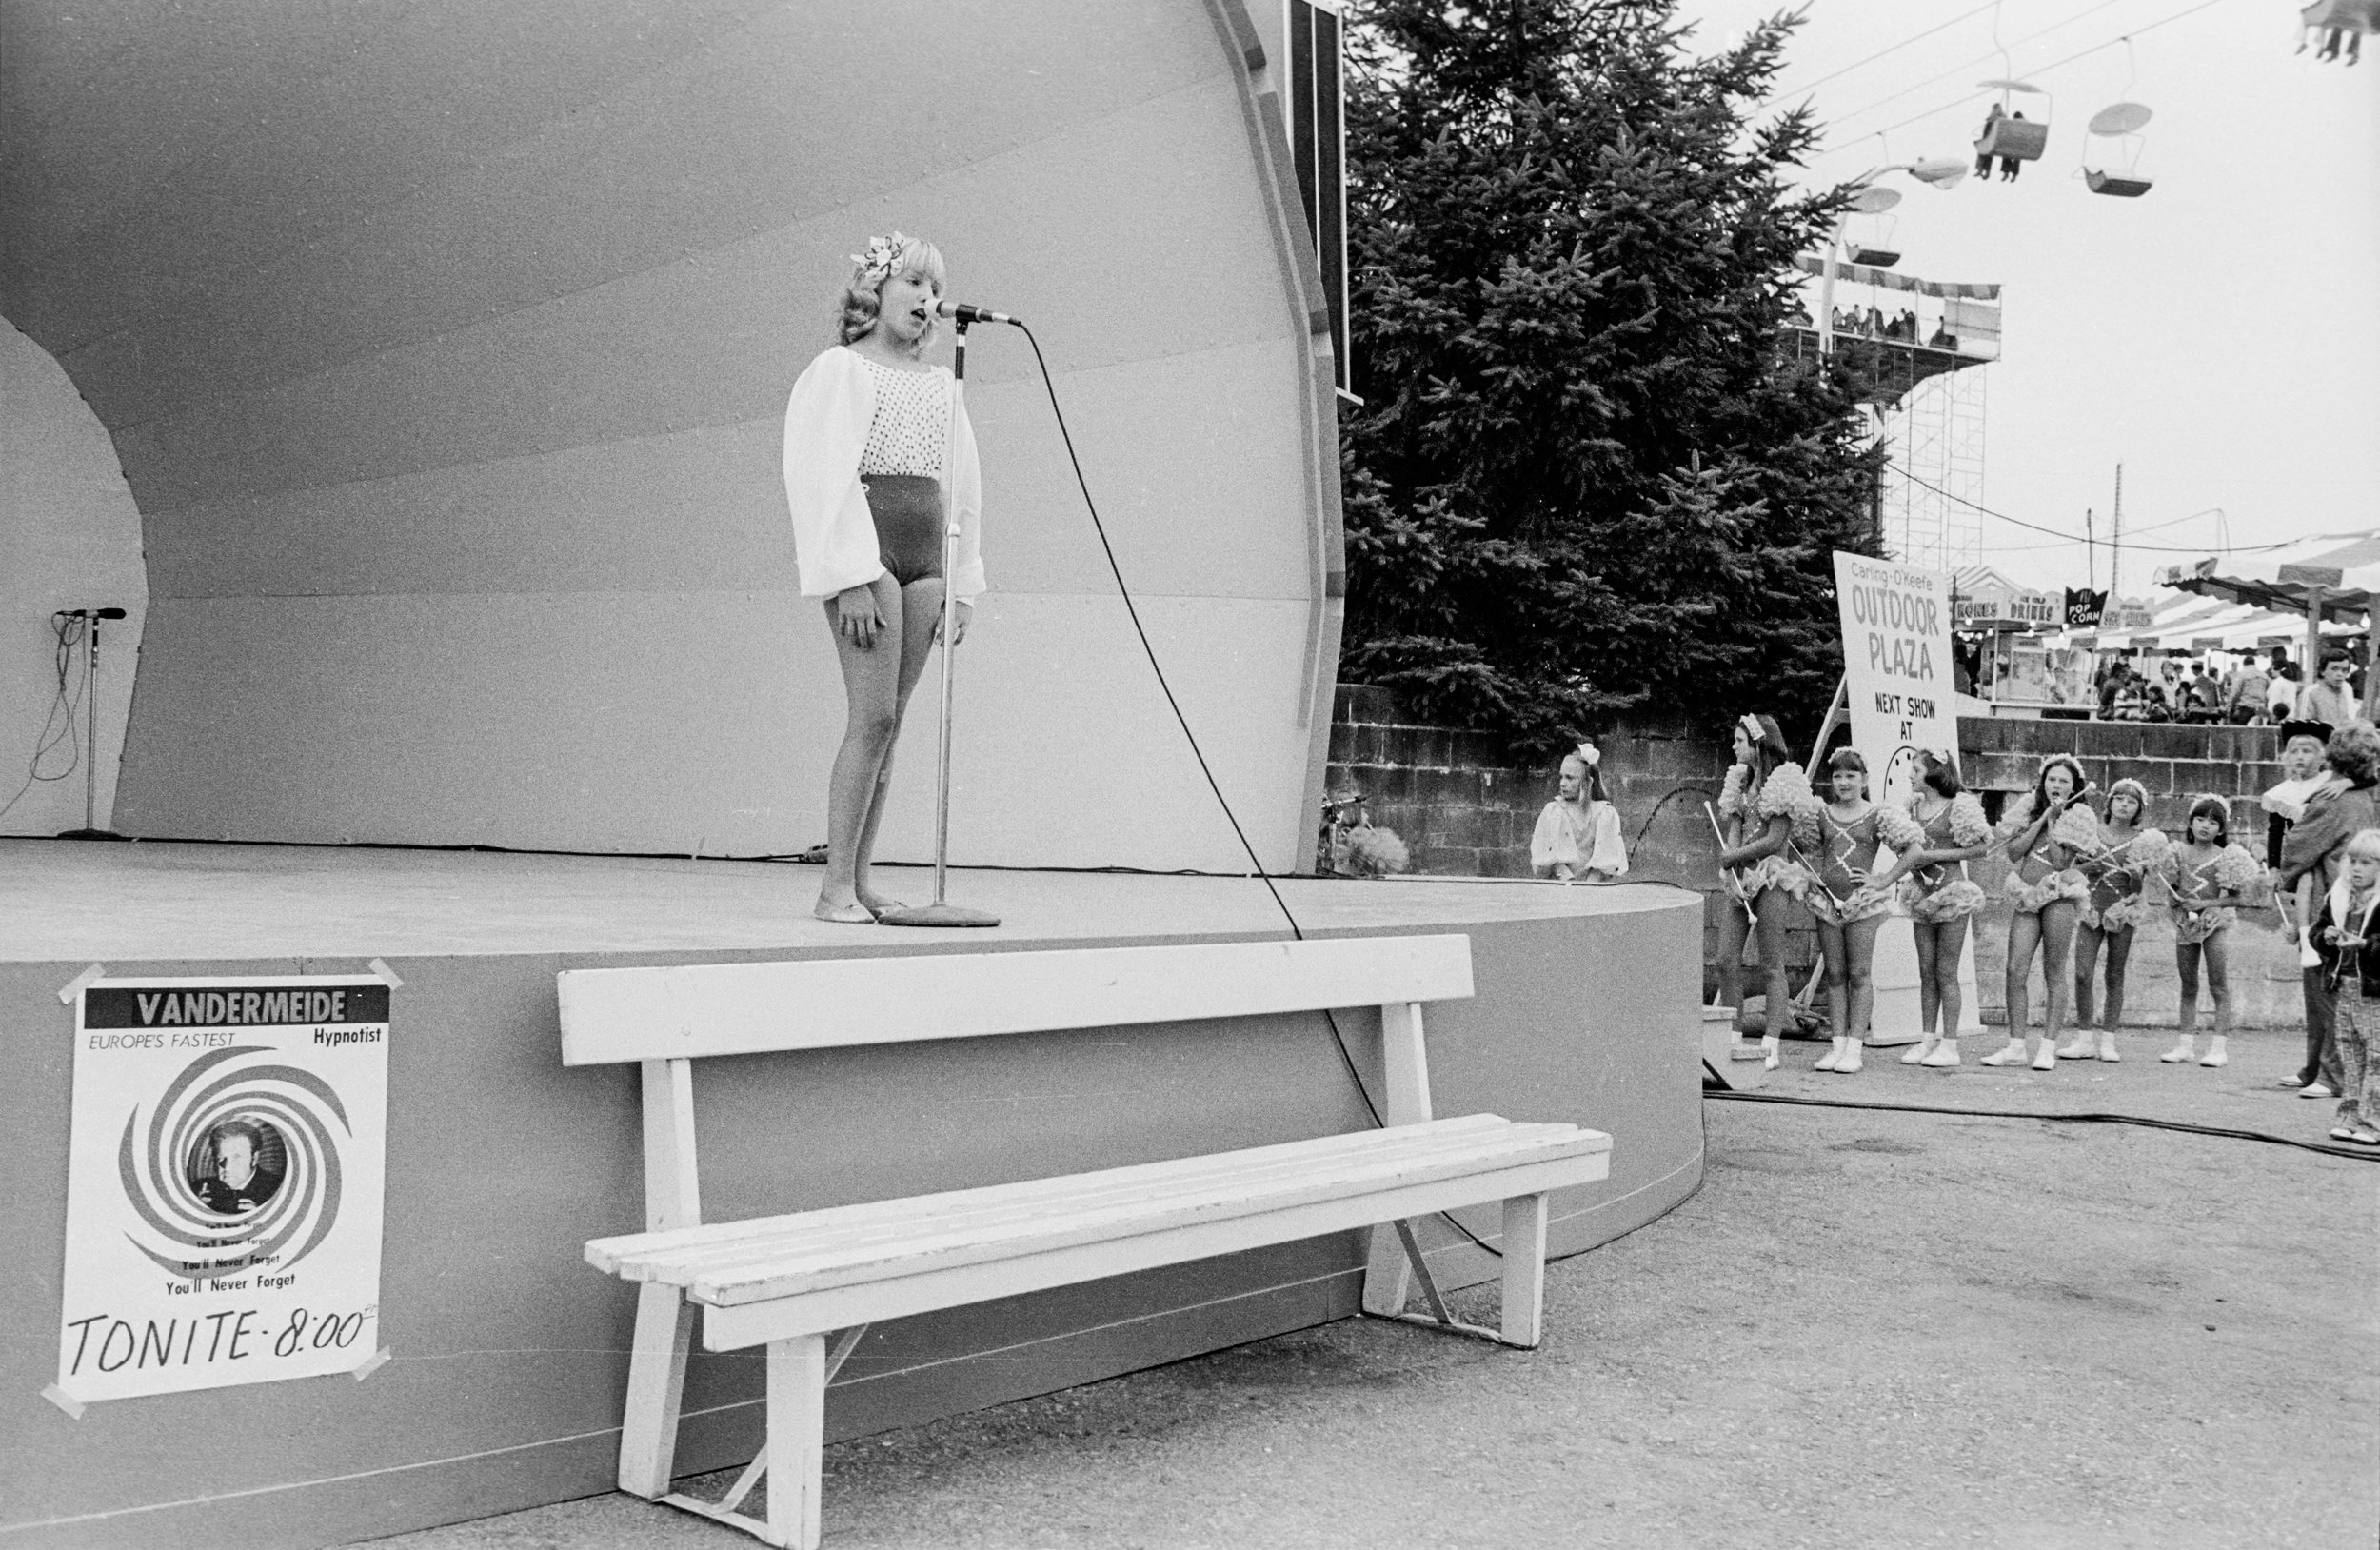 Vancouver, CAN, 1975